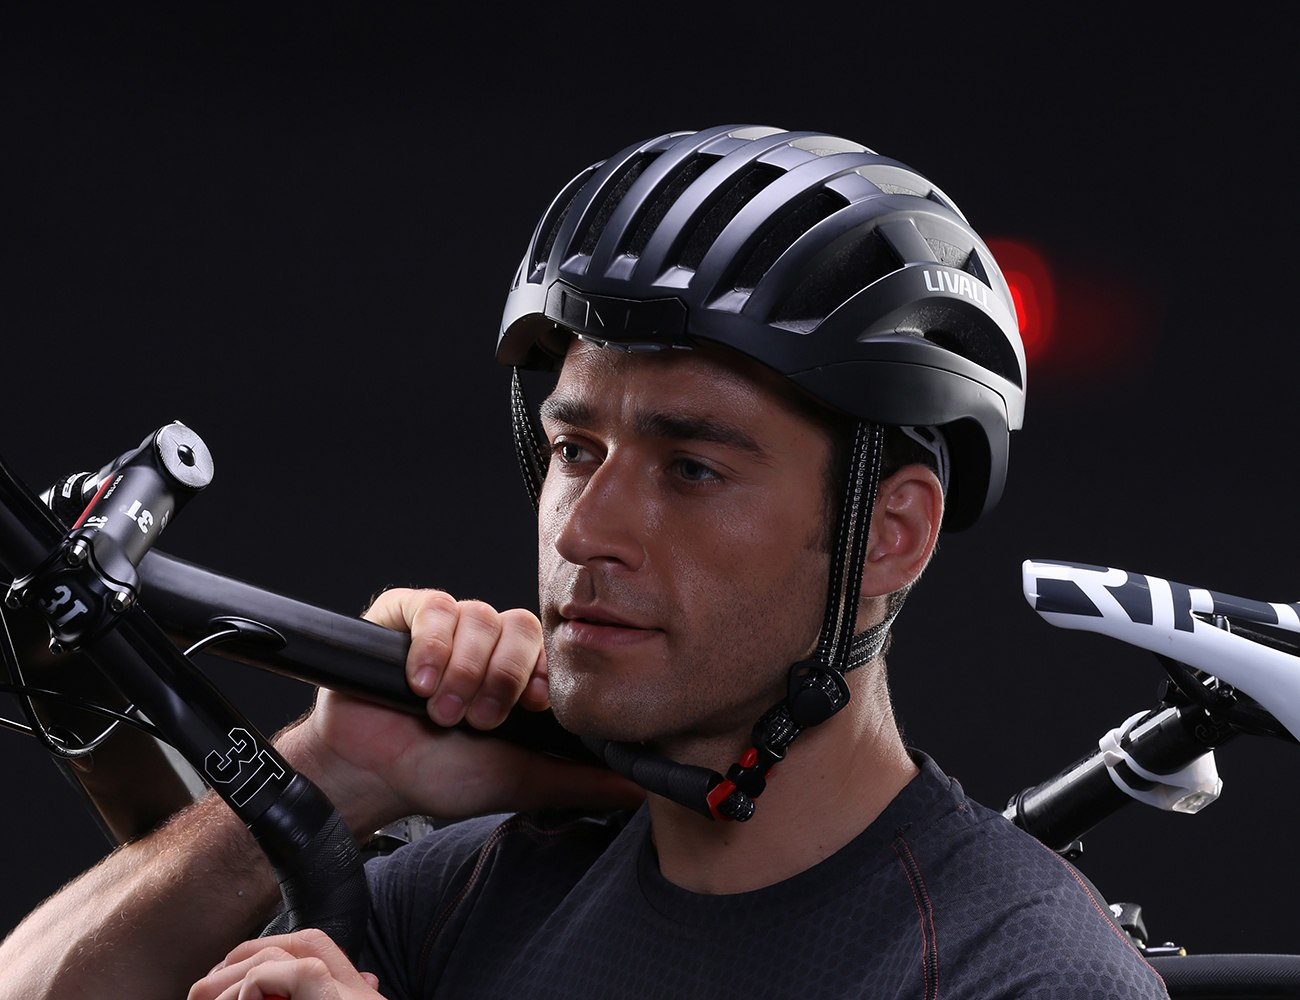 LIVALL+Cycling+Helmet+%26%238211%3B+Smart%2C+Safe+And+Simple